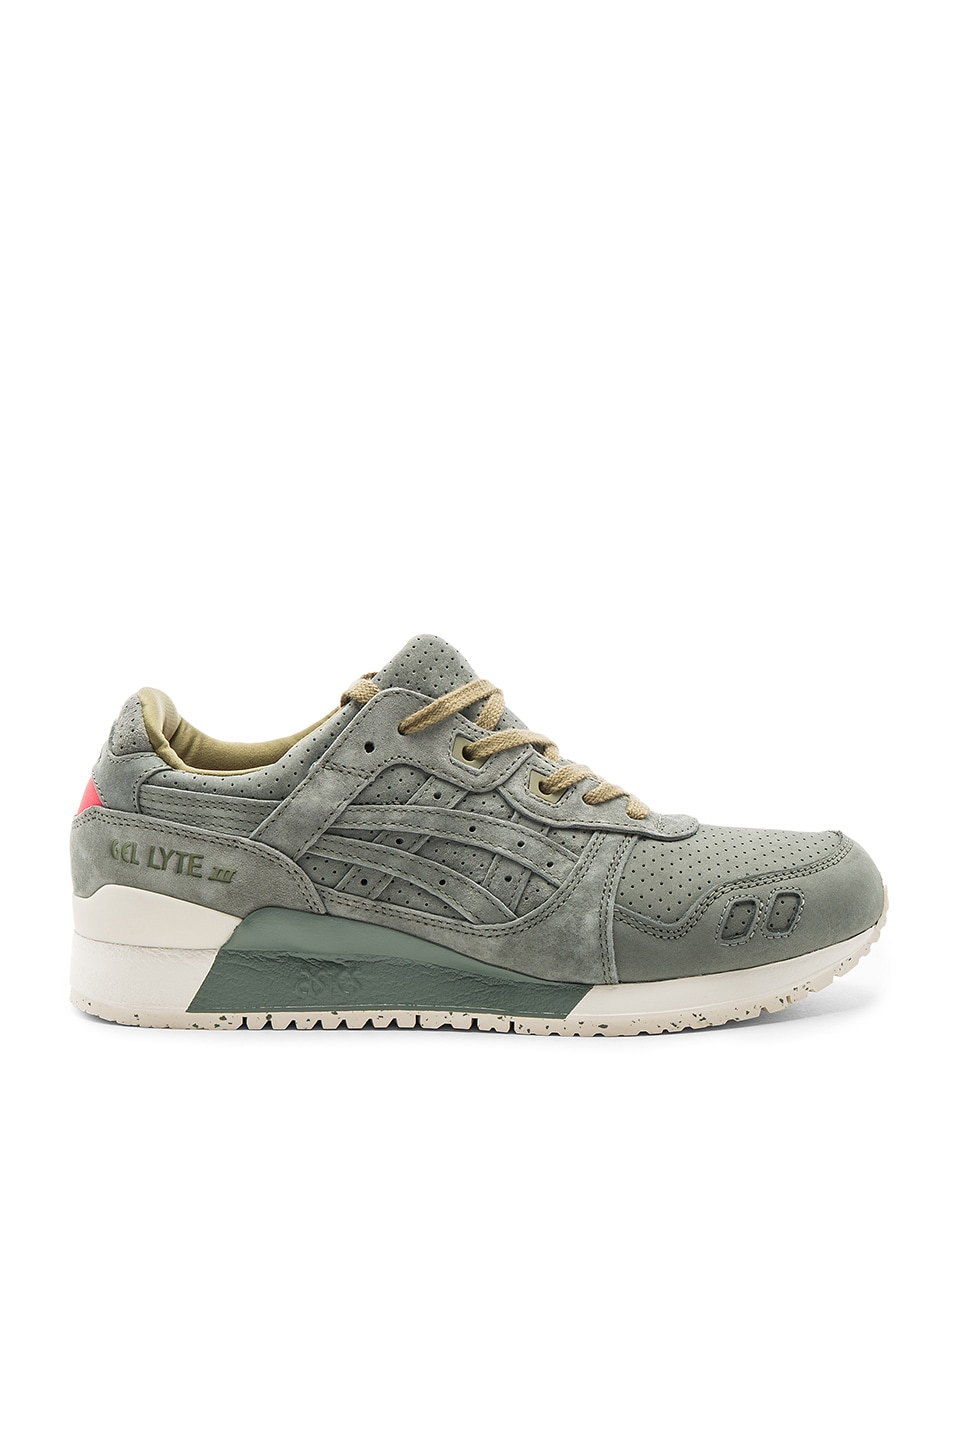 Asics Platinum Gel Lyte III in Agave Green & Agave Green